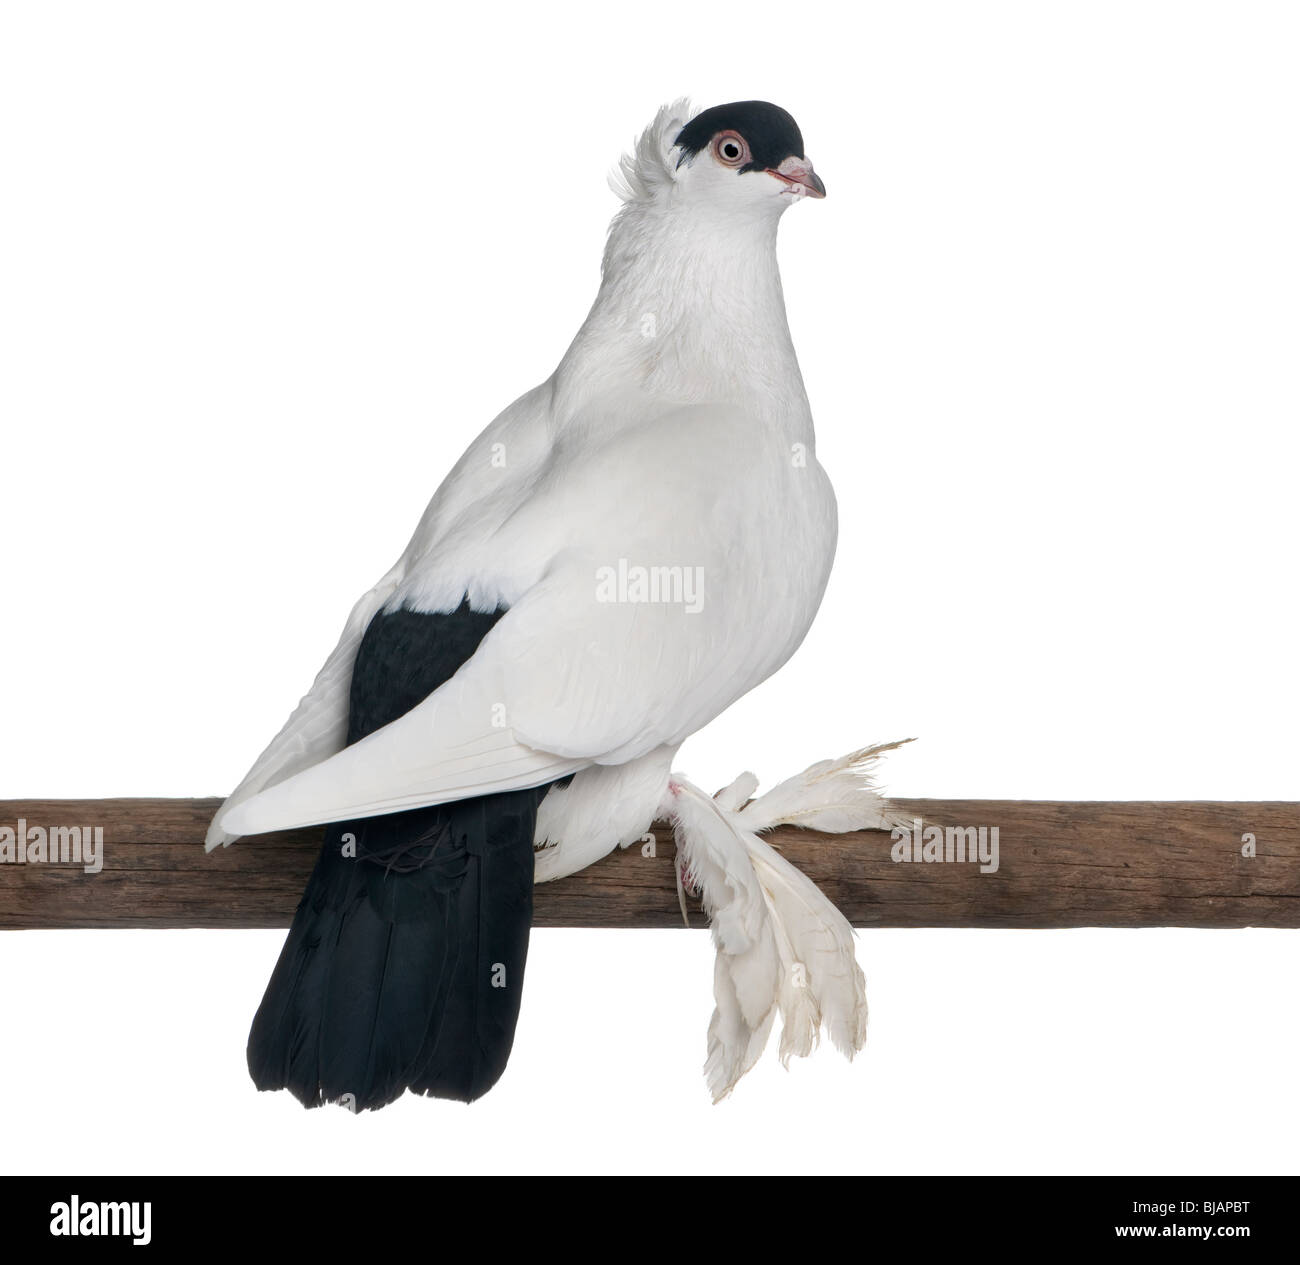 Polish helmet or Kryska Polska, a breed of fancy pigeon, perched on stick in front of white background - Stock Image